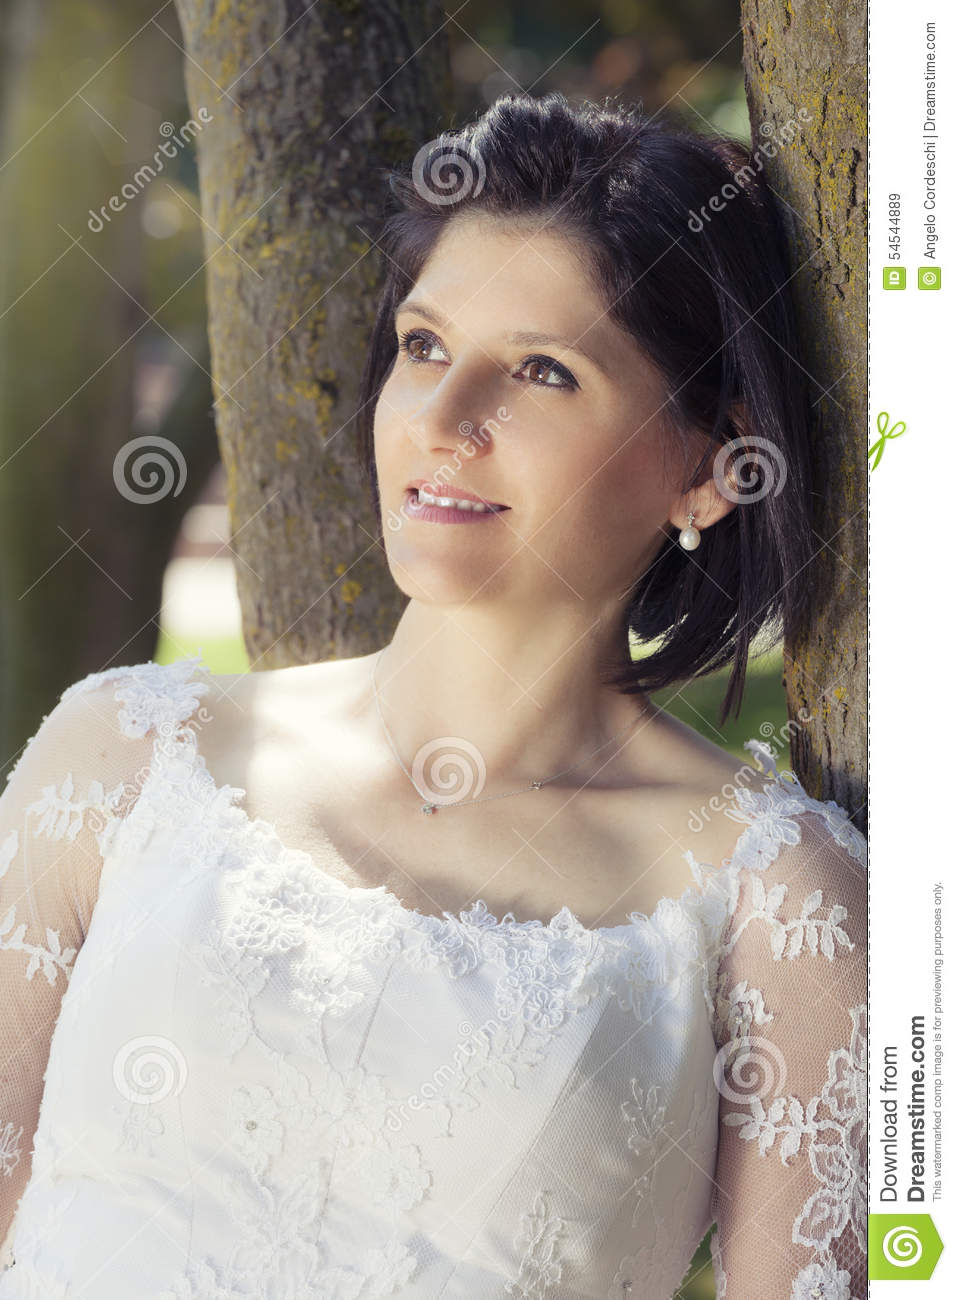 Woman in wedding white dress outdoors